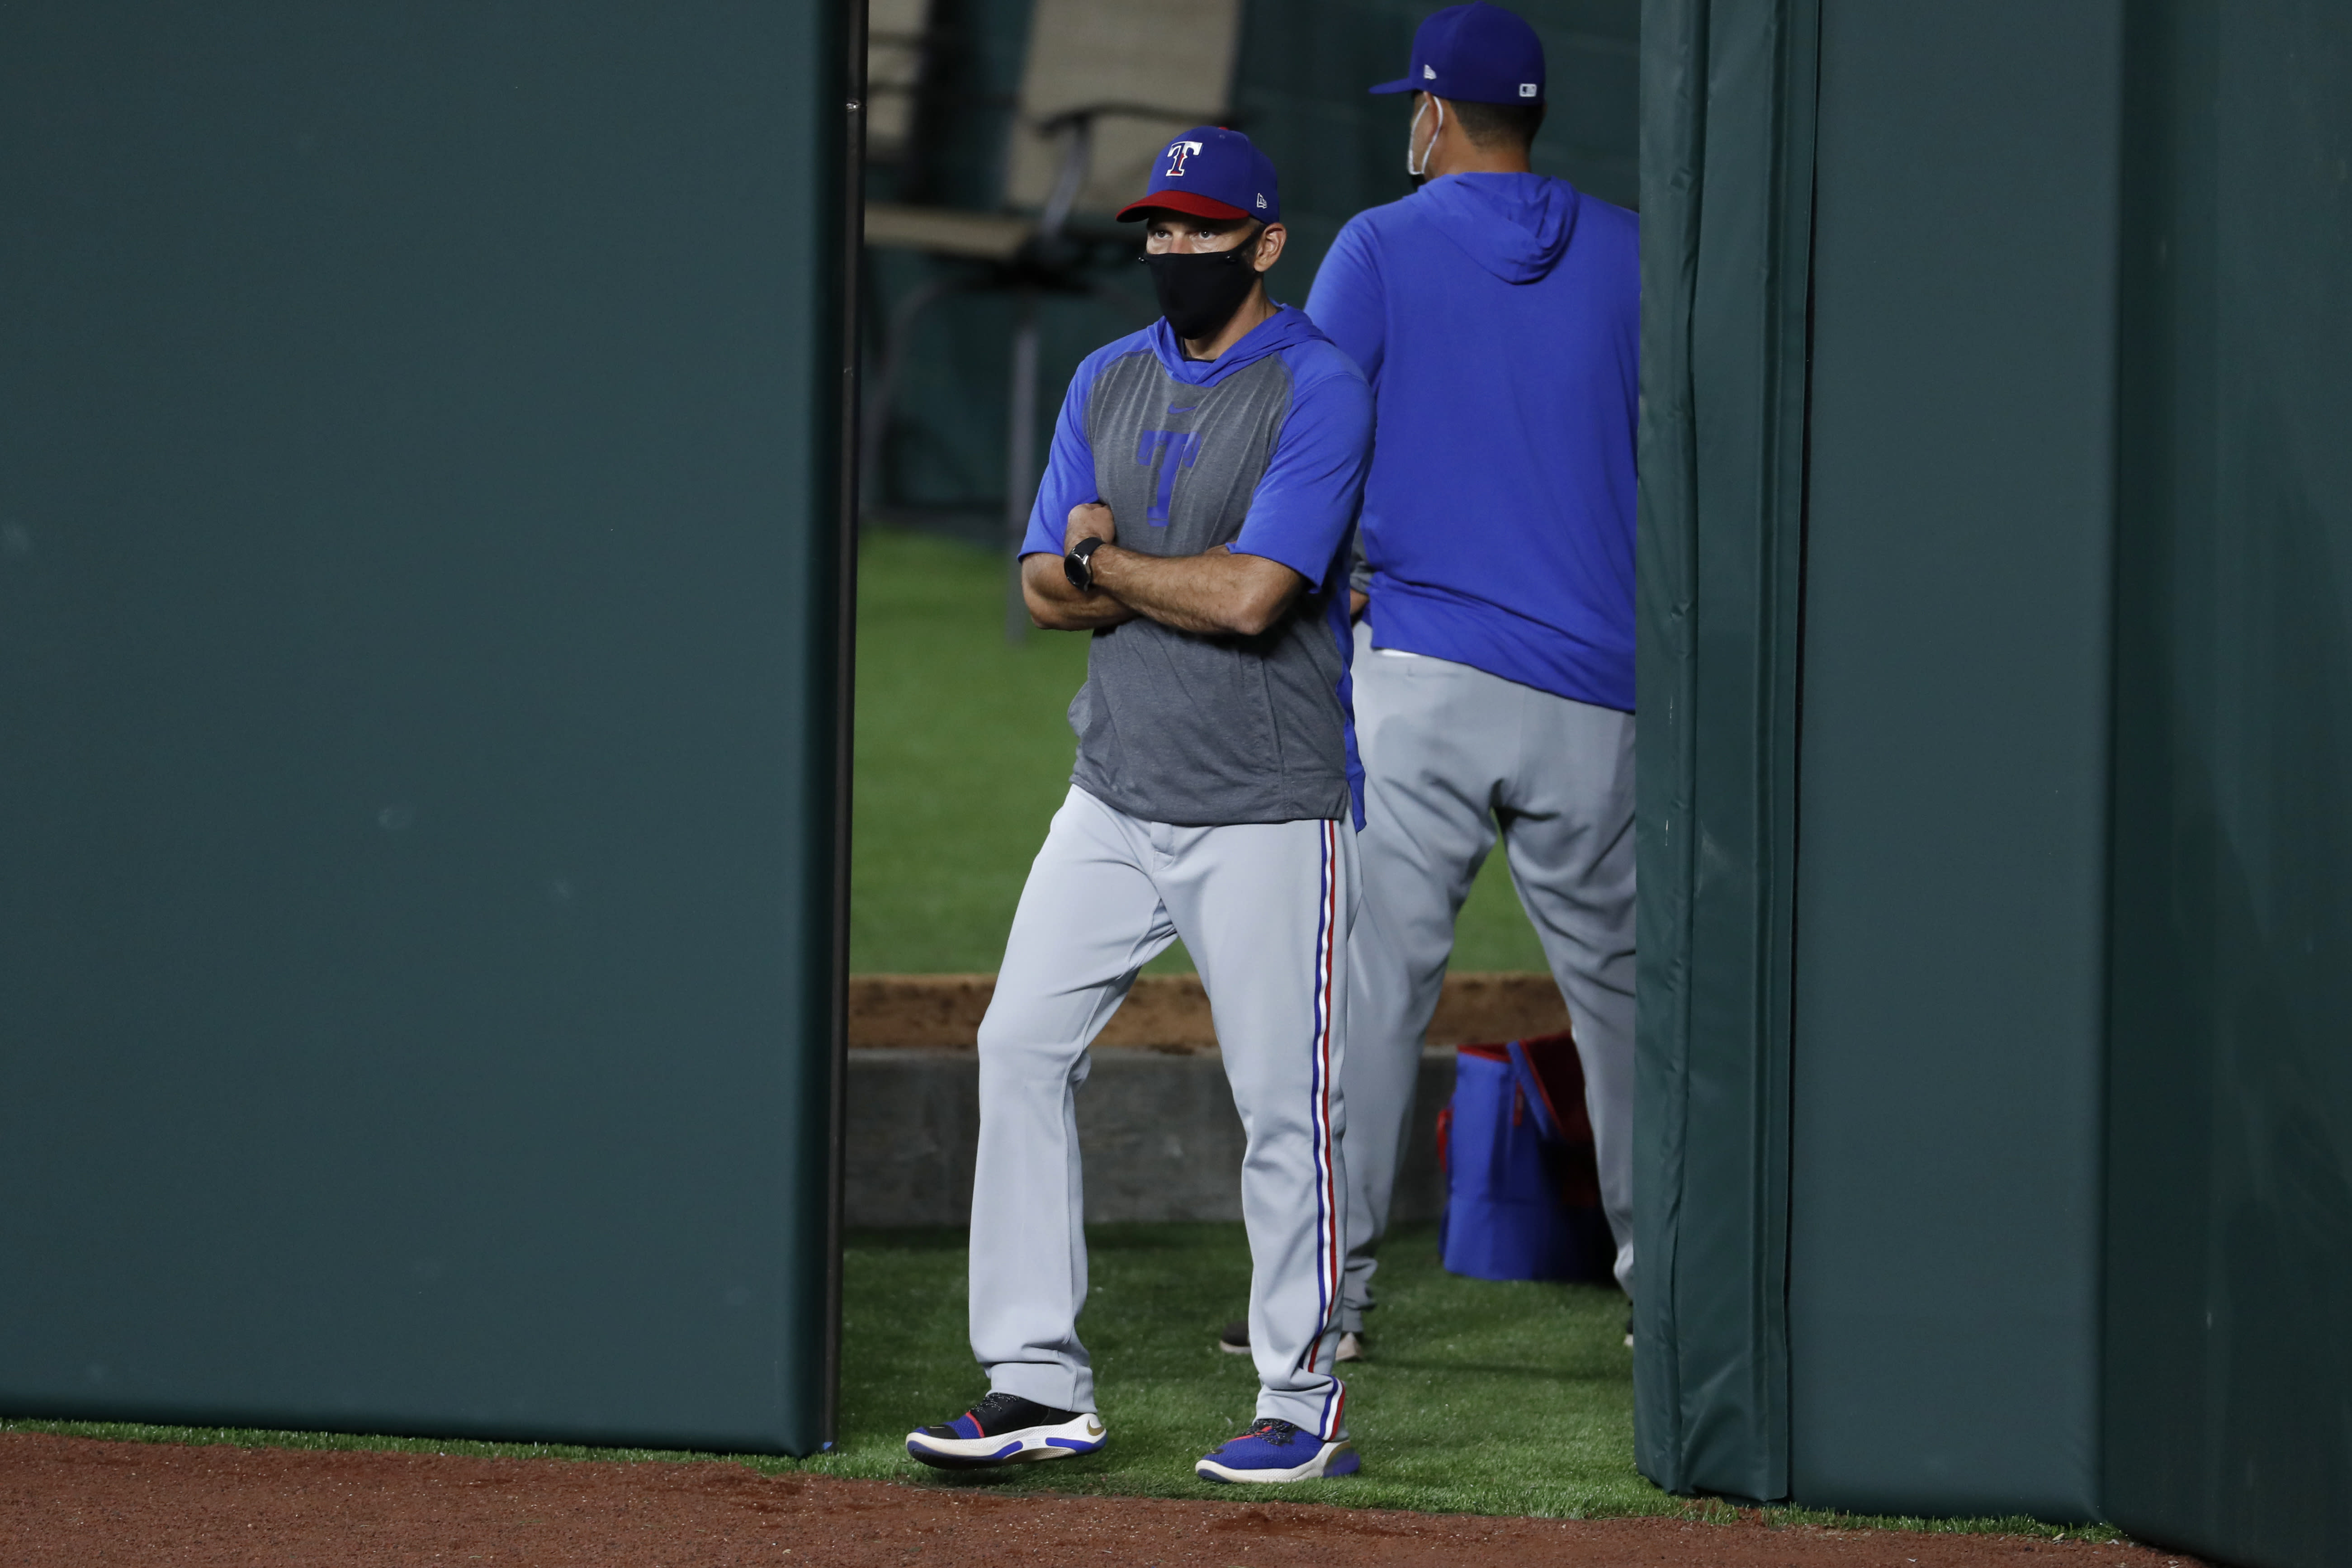 Texas Rangers manager Chris Woodward stands by the bullpen as pitchers prepare for an intrasquad baseball practice at Globe Life Field in Arlington, Texas, Friday, July 3, 2020. (AP Photo/Tony Gutierrez)